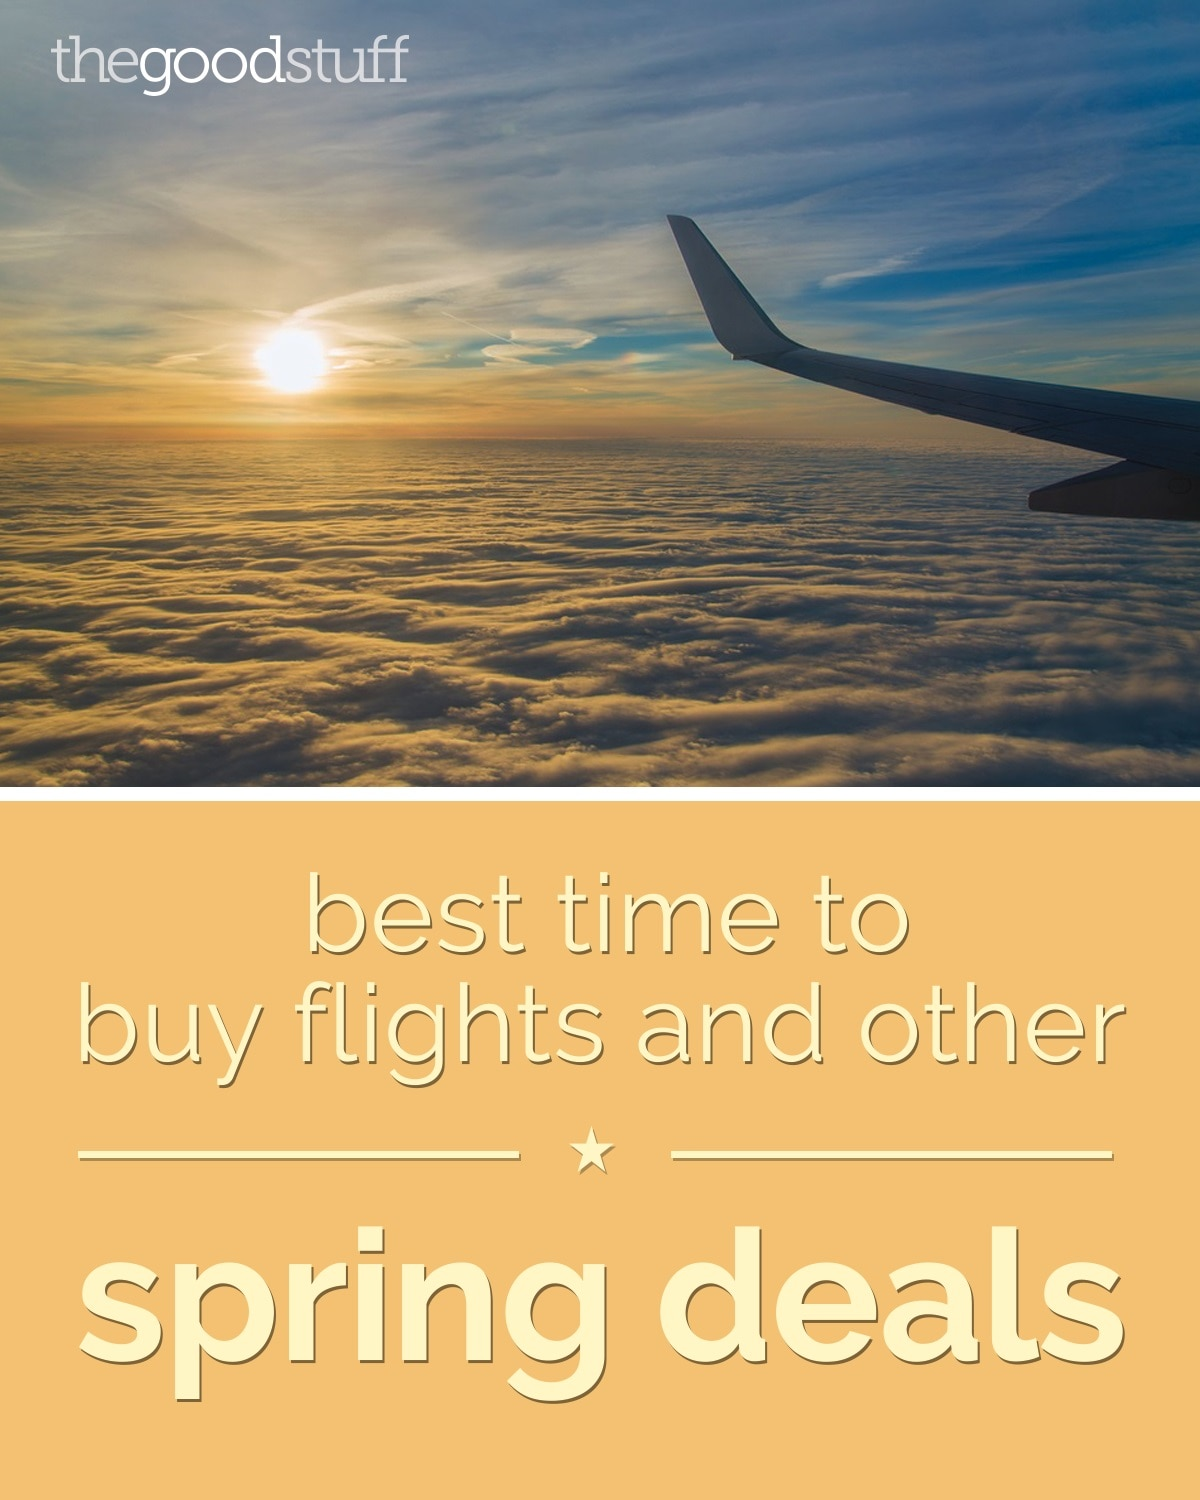 save-best-time-to-buy-flights